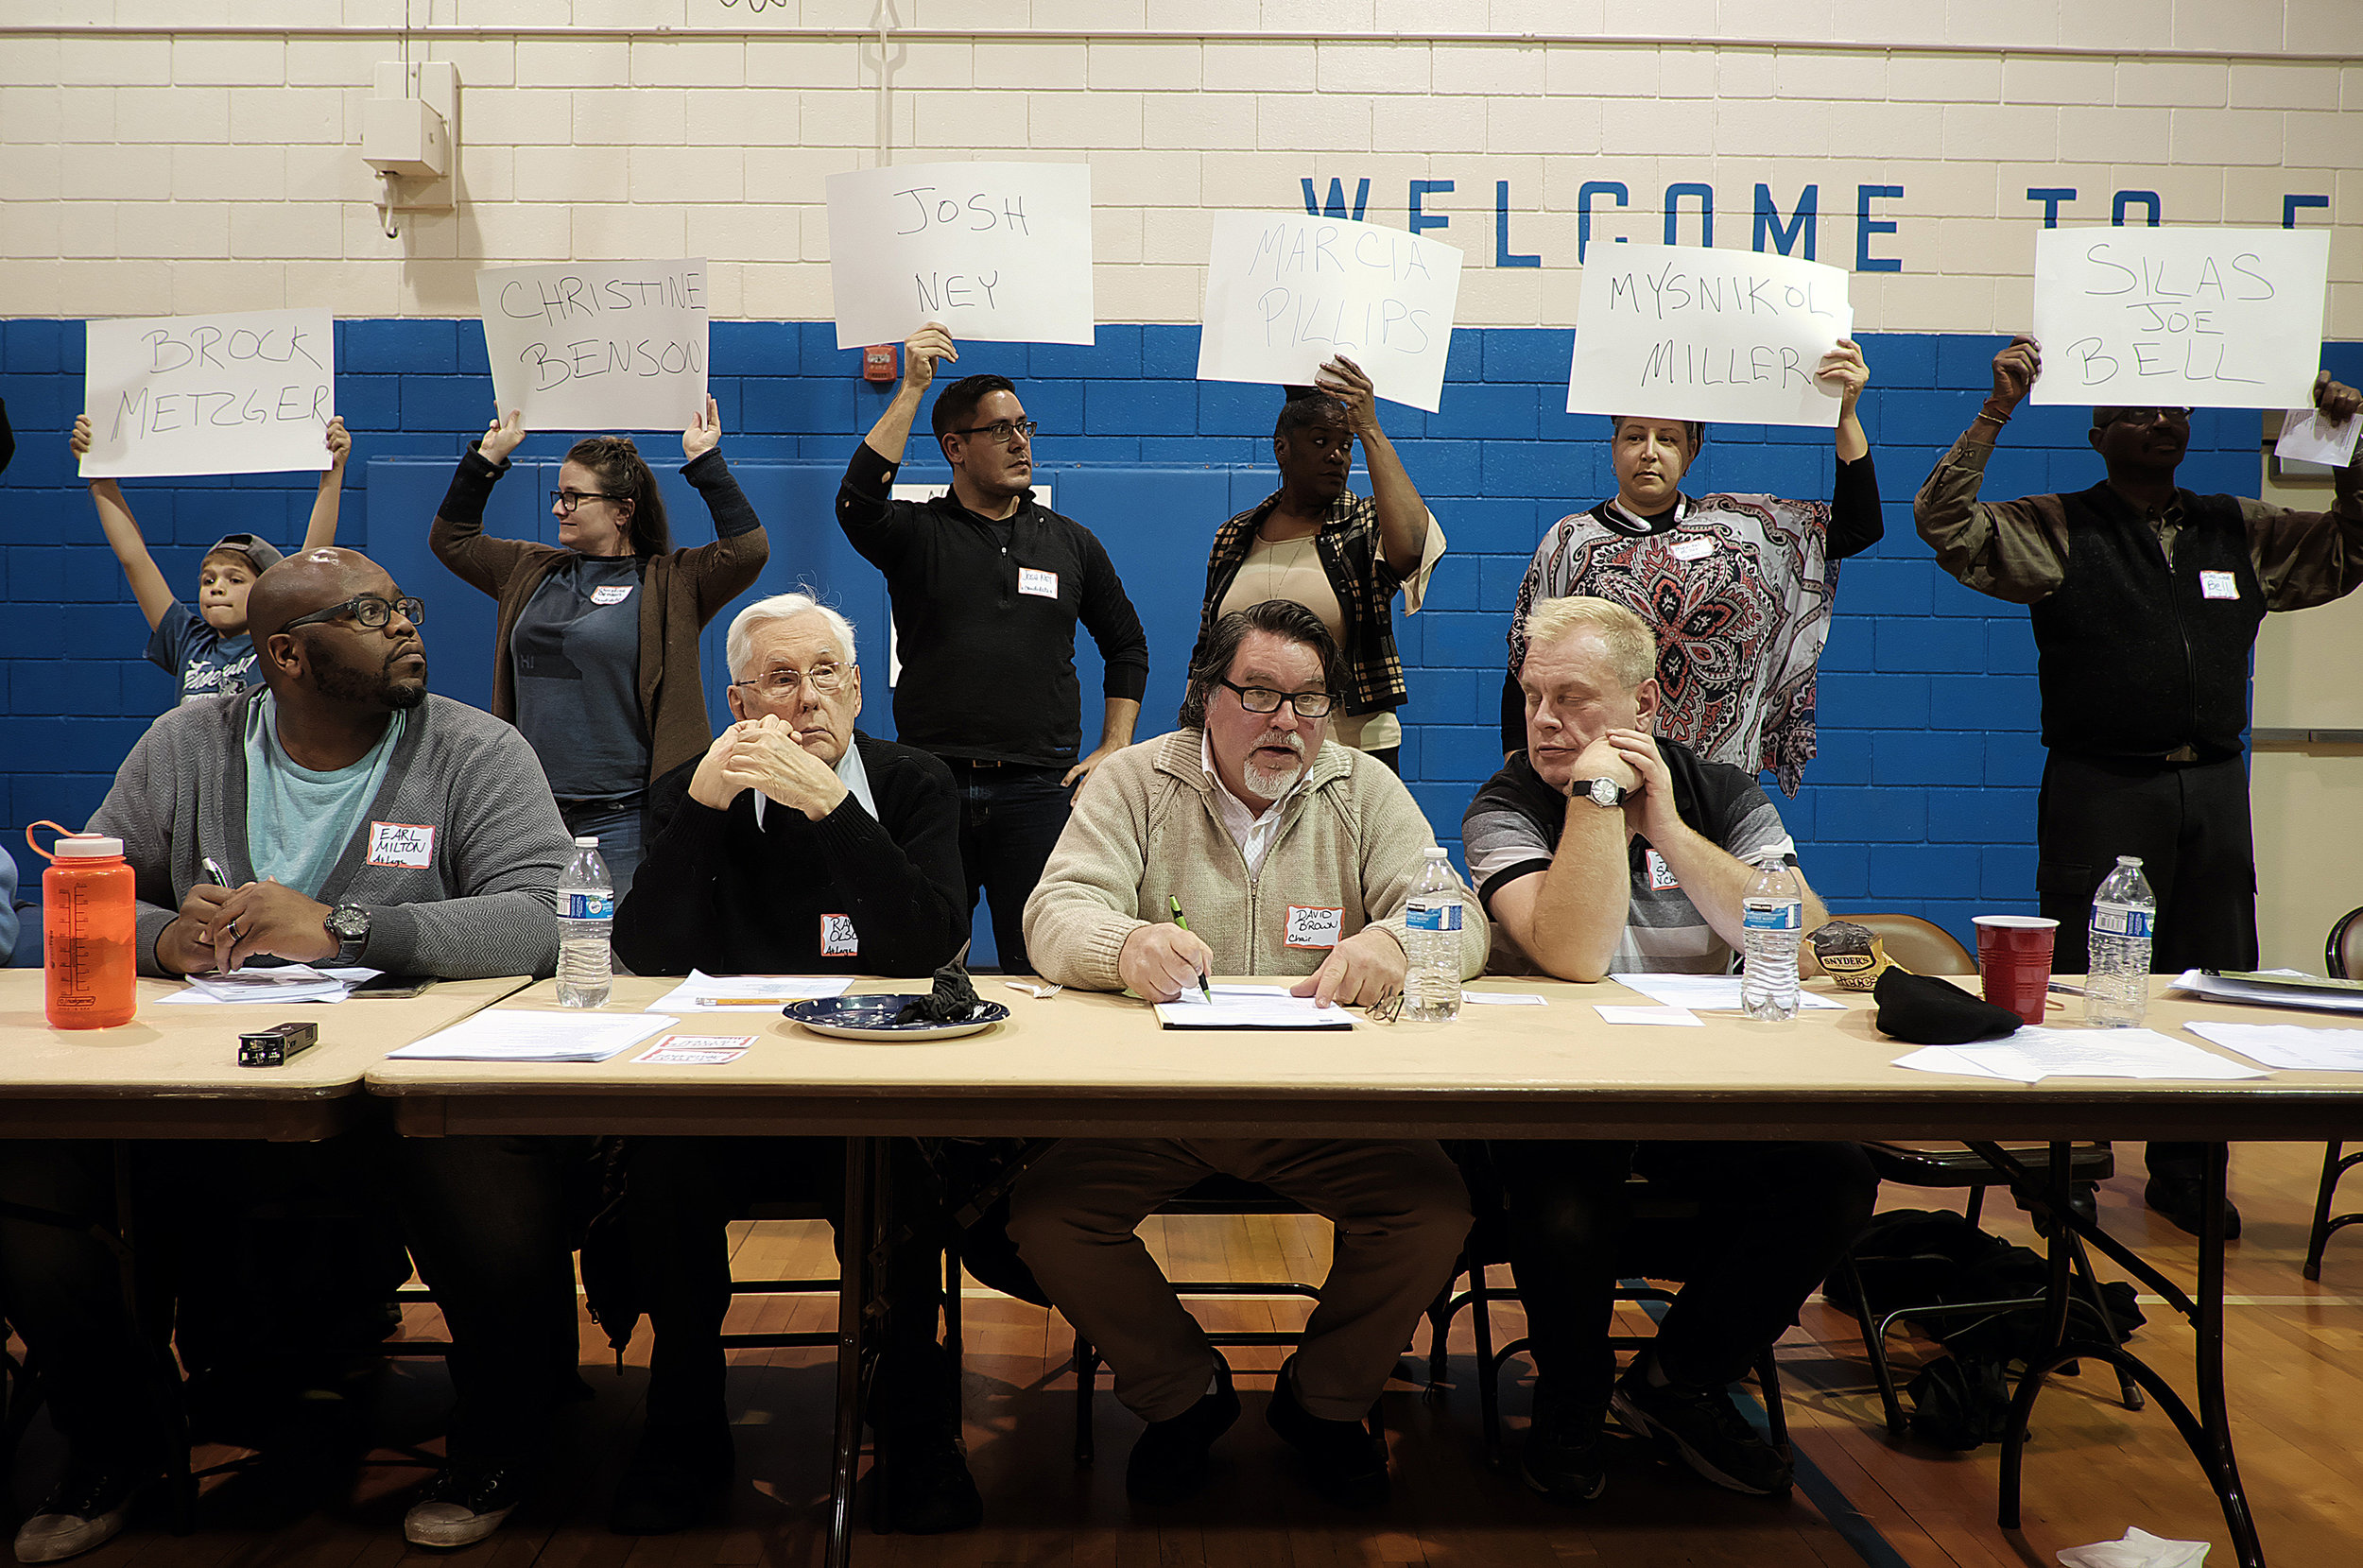 Folwell neighborhood residents elected an entirely new board for their neighborhood association this year after community members expressed concern with the board's operations and demanded change.